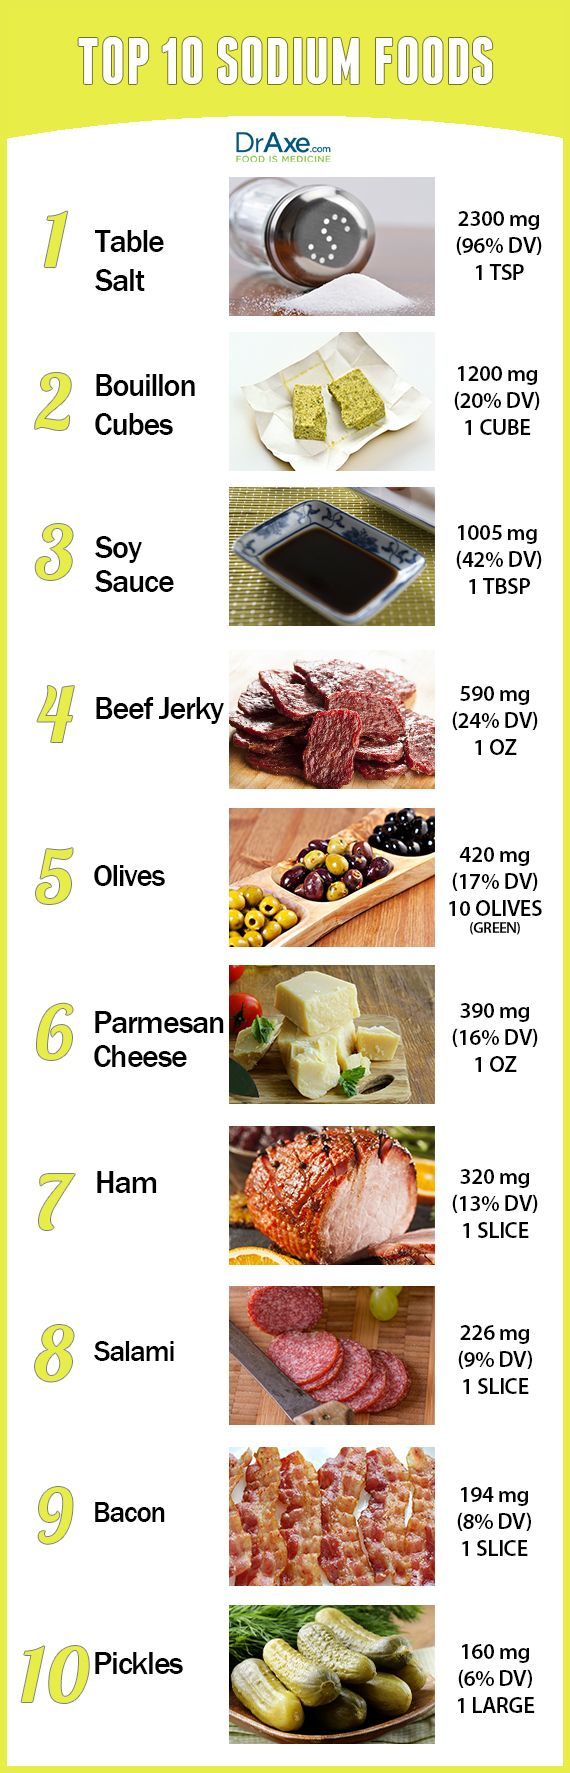 Top 10 Sodium Foods - DrAxe.com